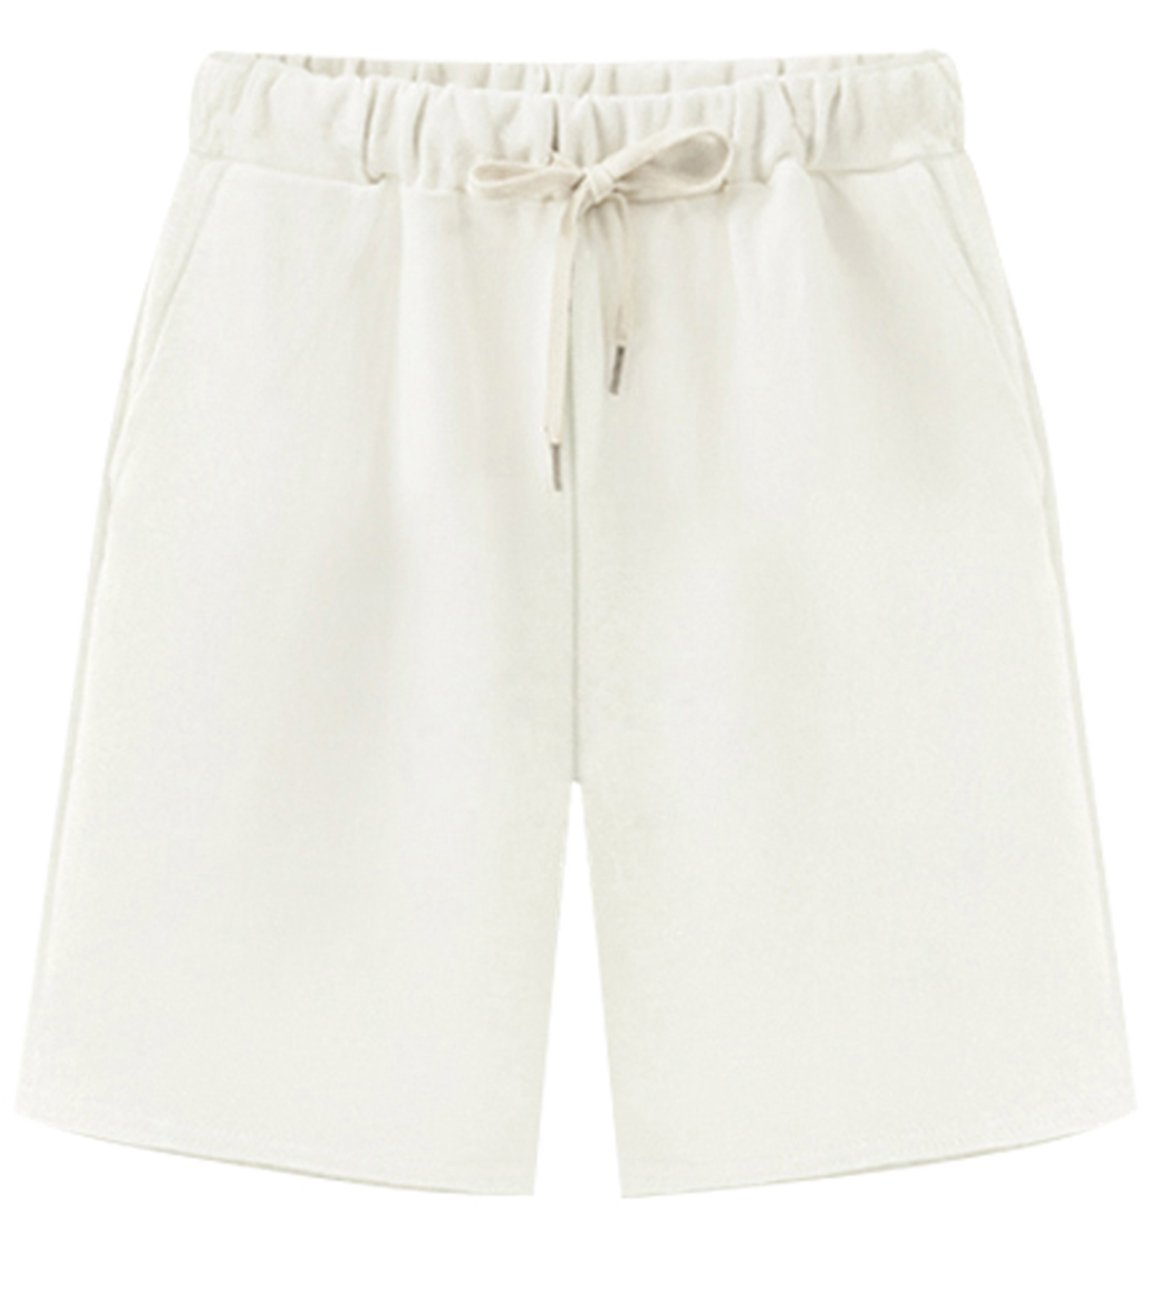 HOW'ON Women's Soft Knit Elastic Waist Jersey Casual Bermuda Shorts with Drawstring White M